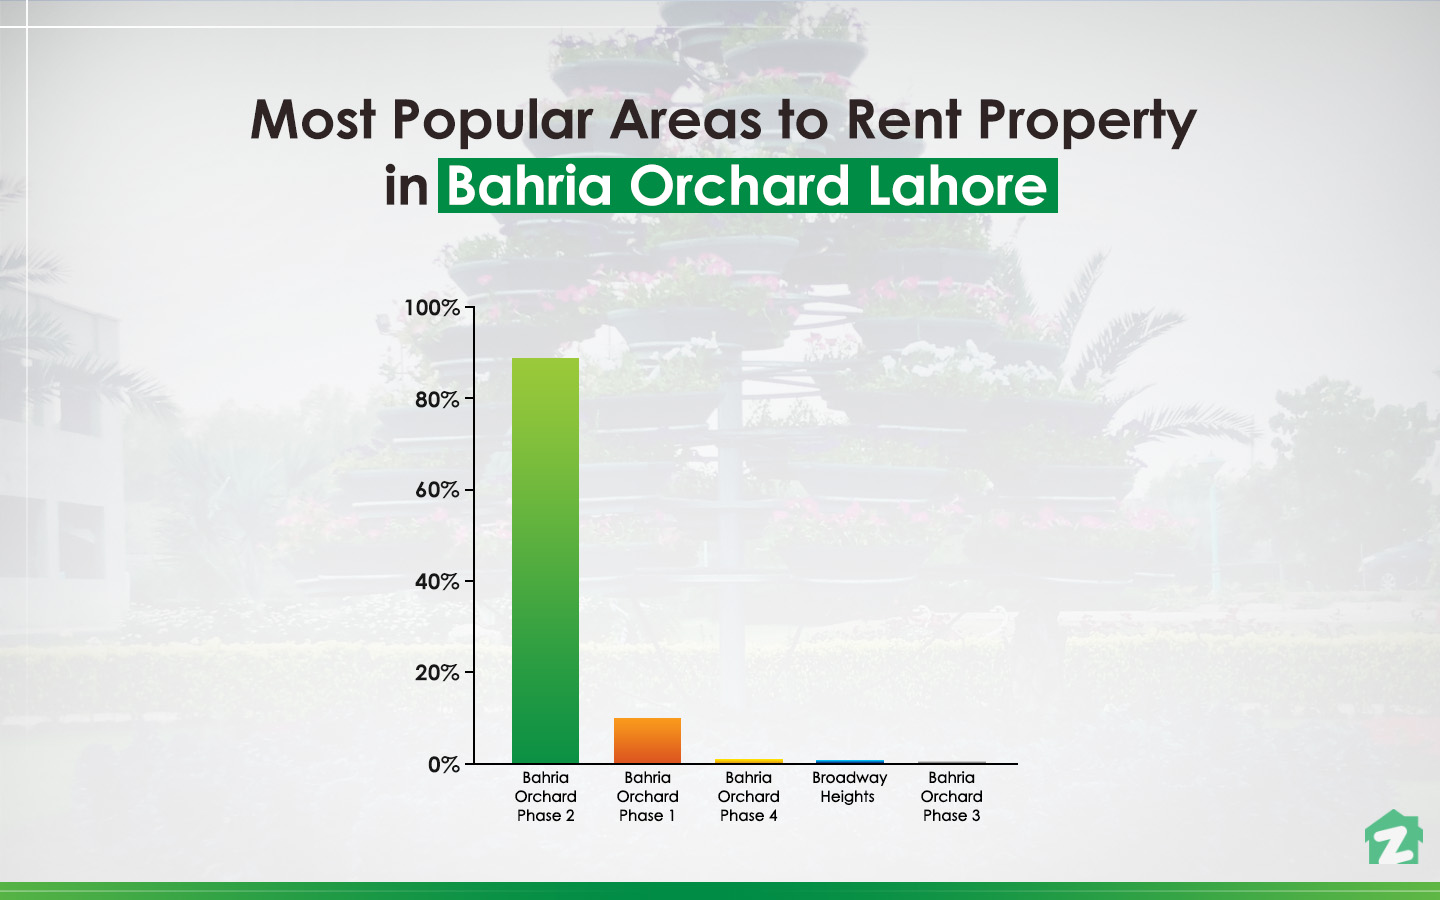 Rental trends for properties in Bahria Orchard, Lahore.